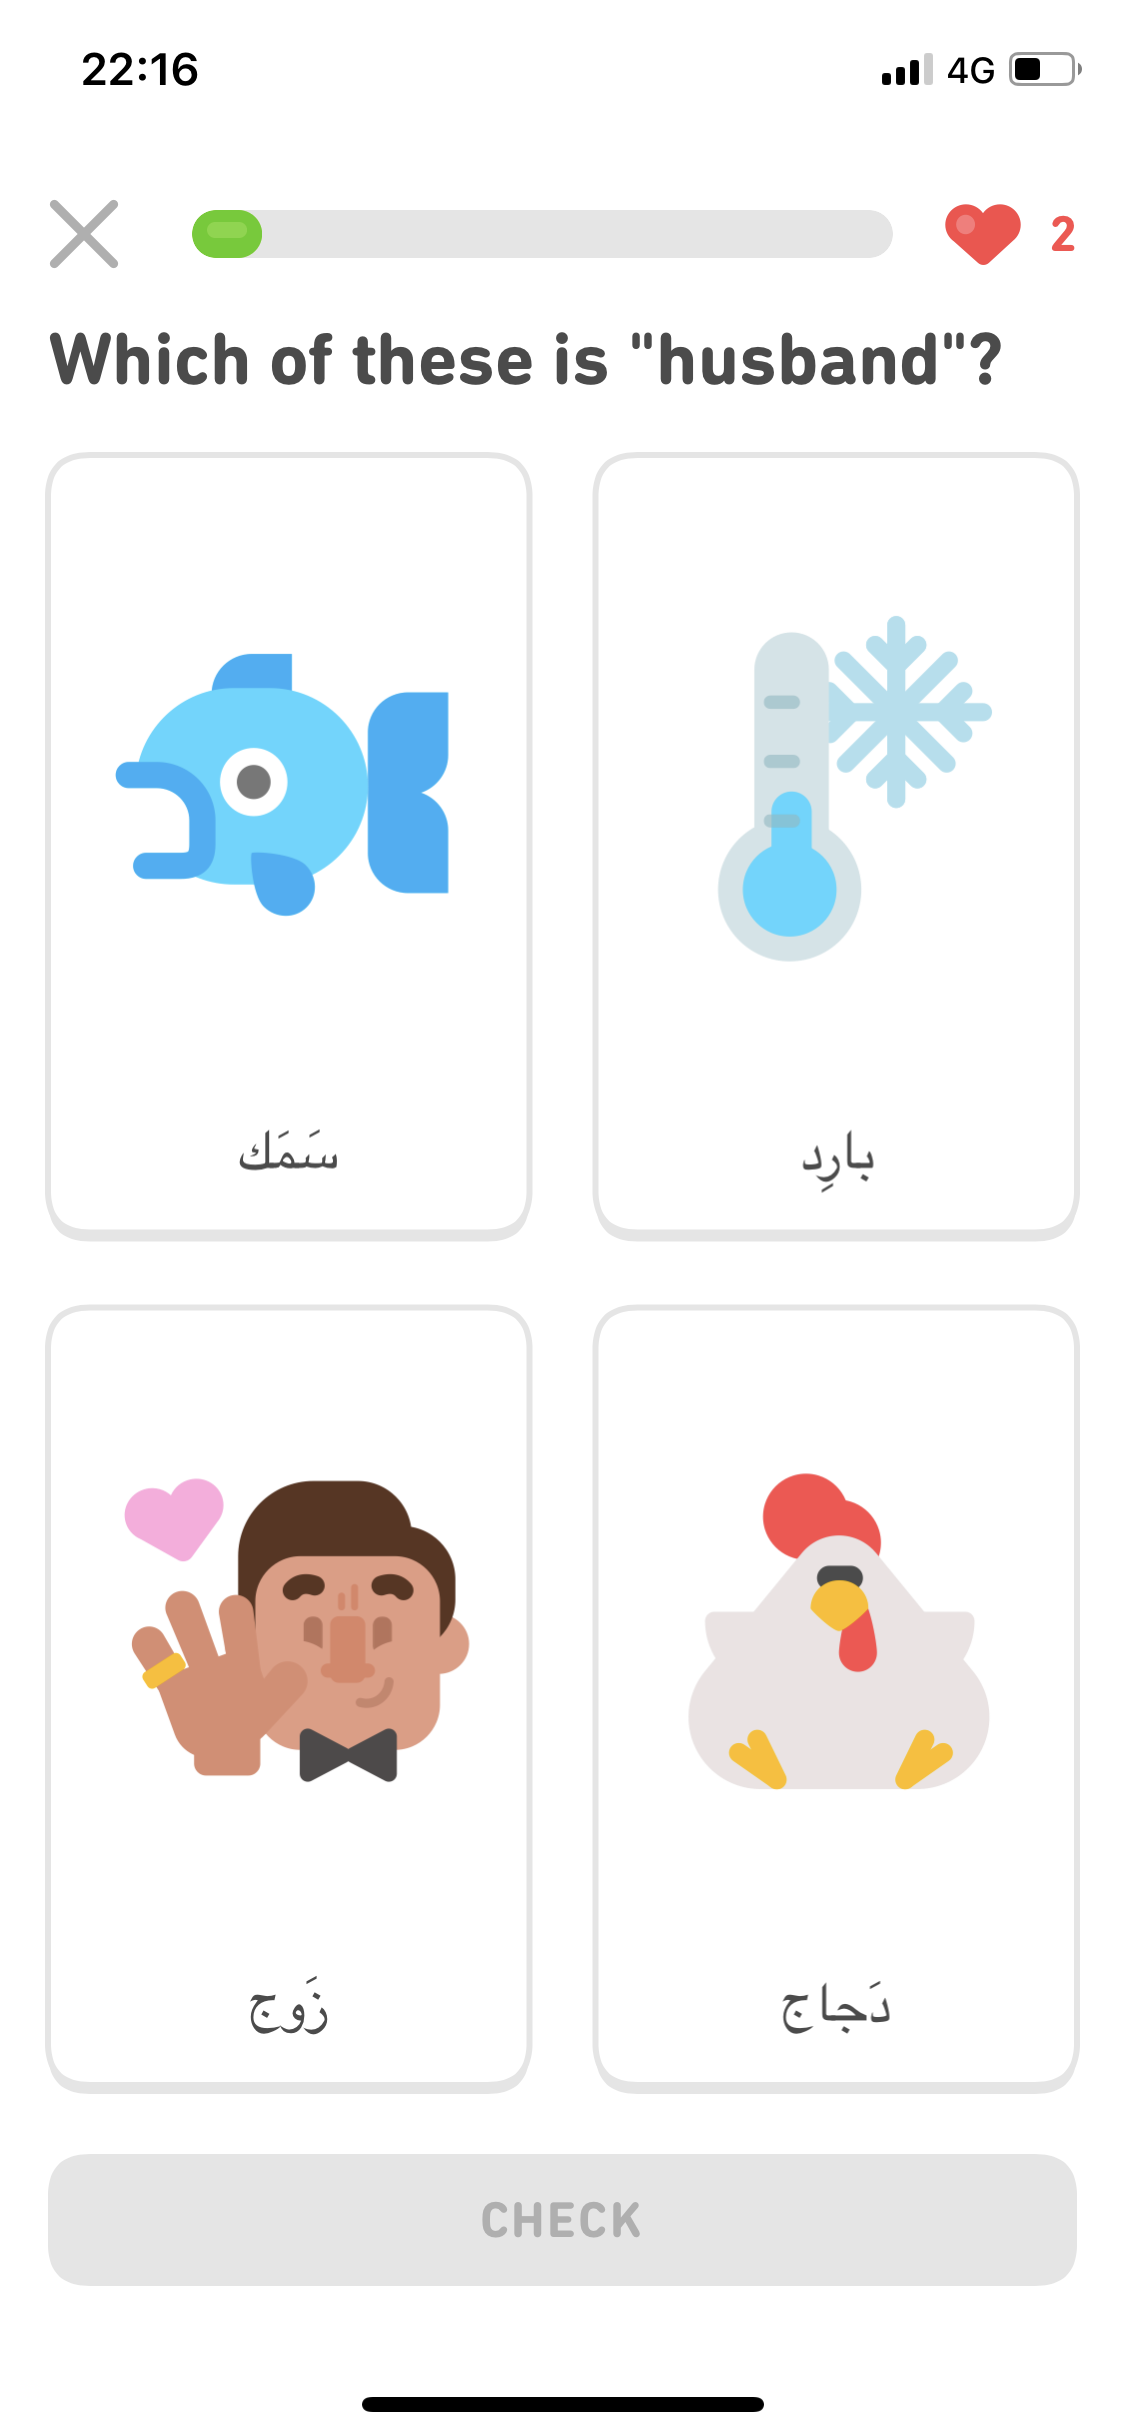 Duolingo asks which of these is husband